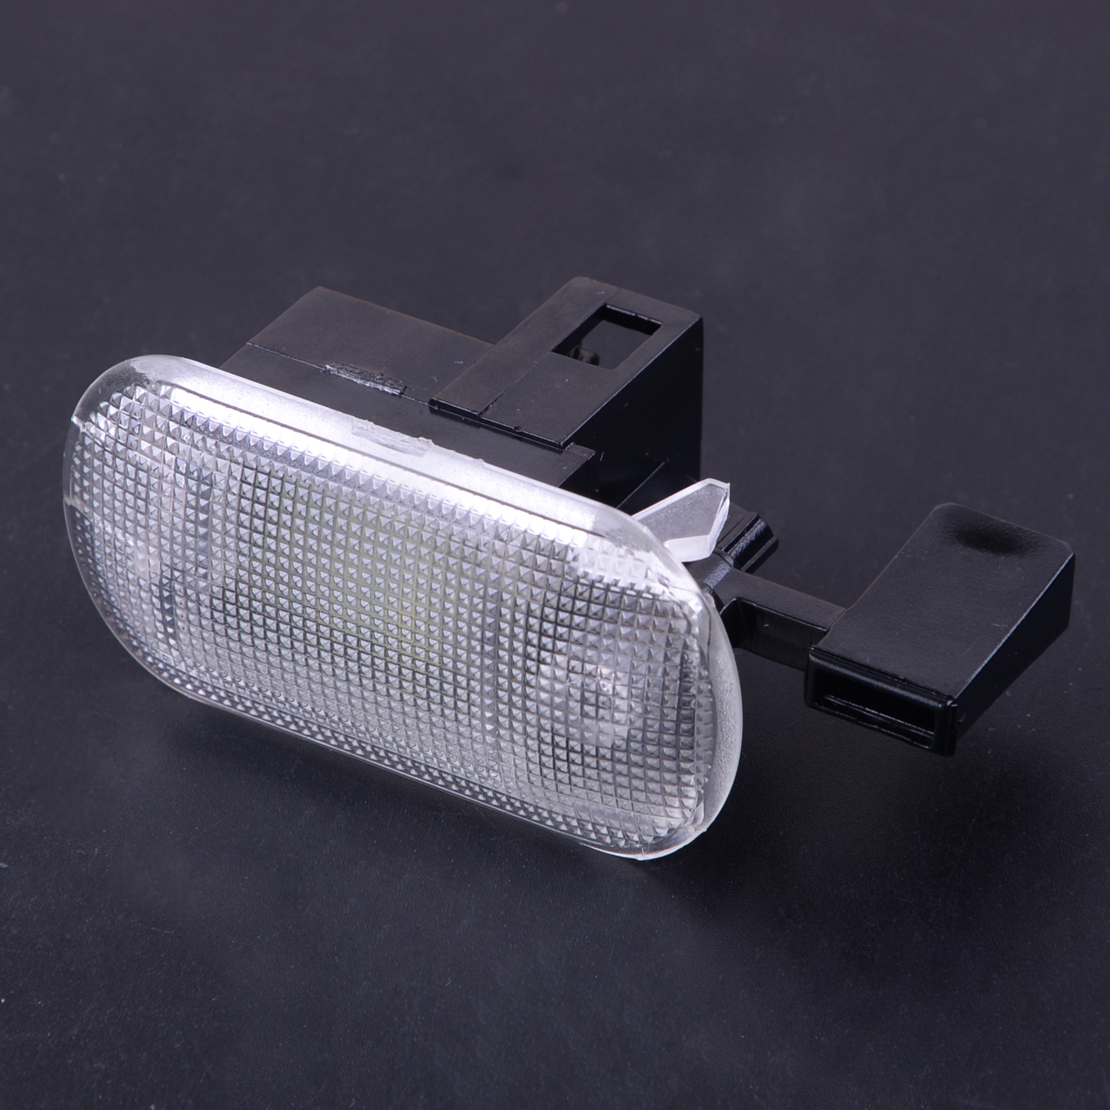 12V LED Glove Box Module Light Lamp Fit for VW Beetle Jetta Golf MK4 Passat Touran Touareg Skoda Fabia Octavia Superb Yeti image